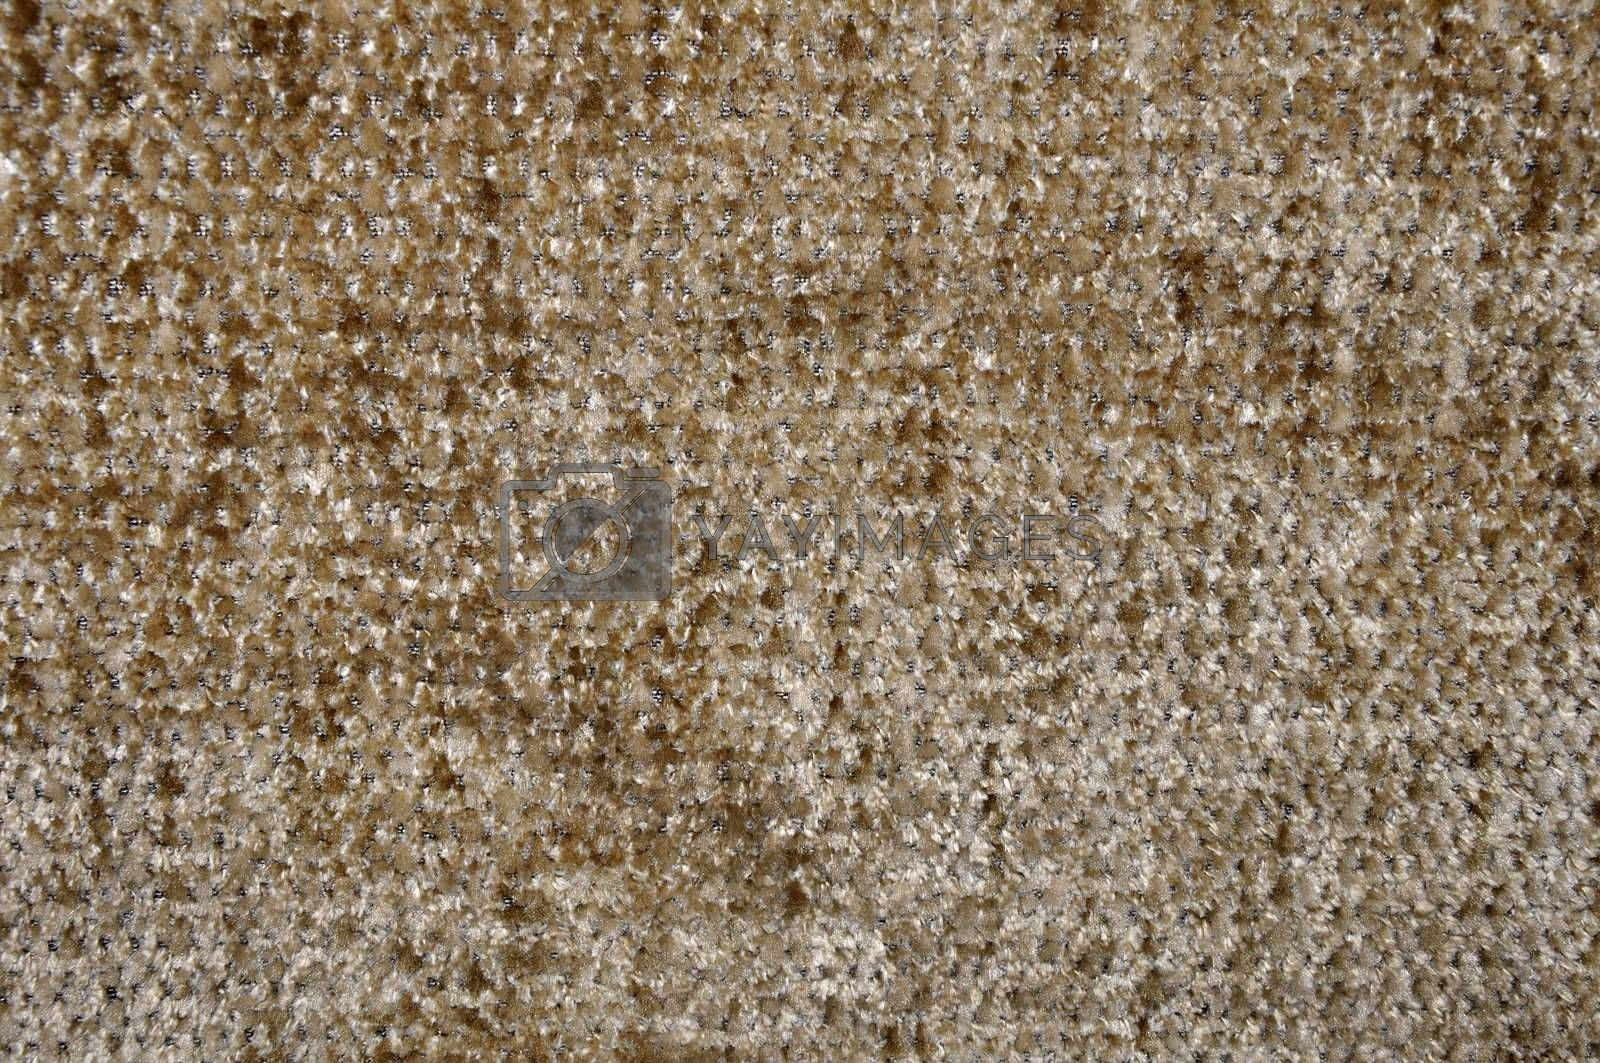 abstract closeup of a brown and tan design